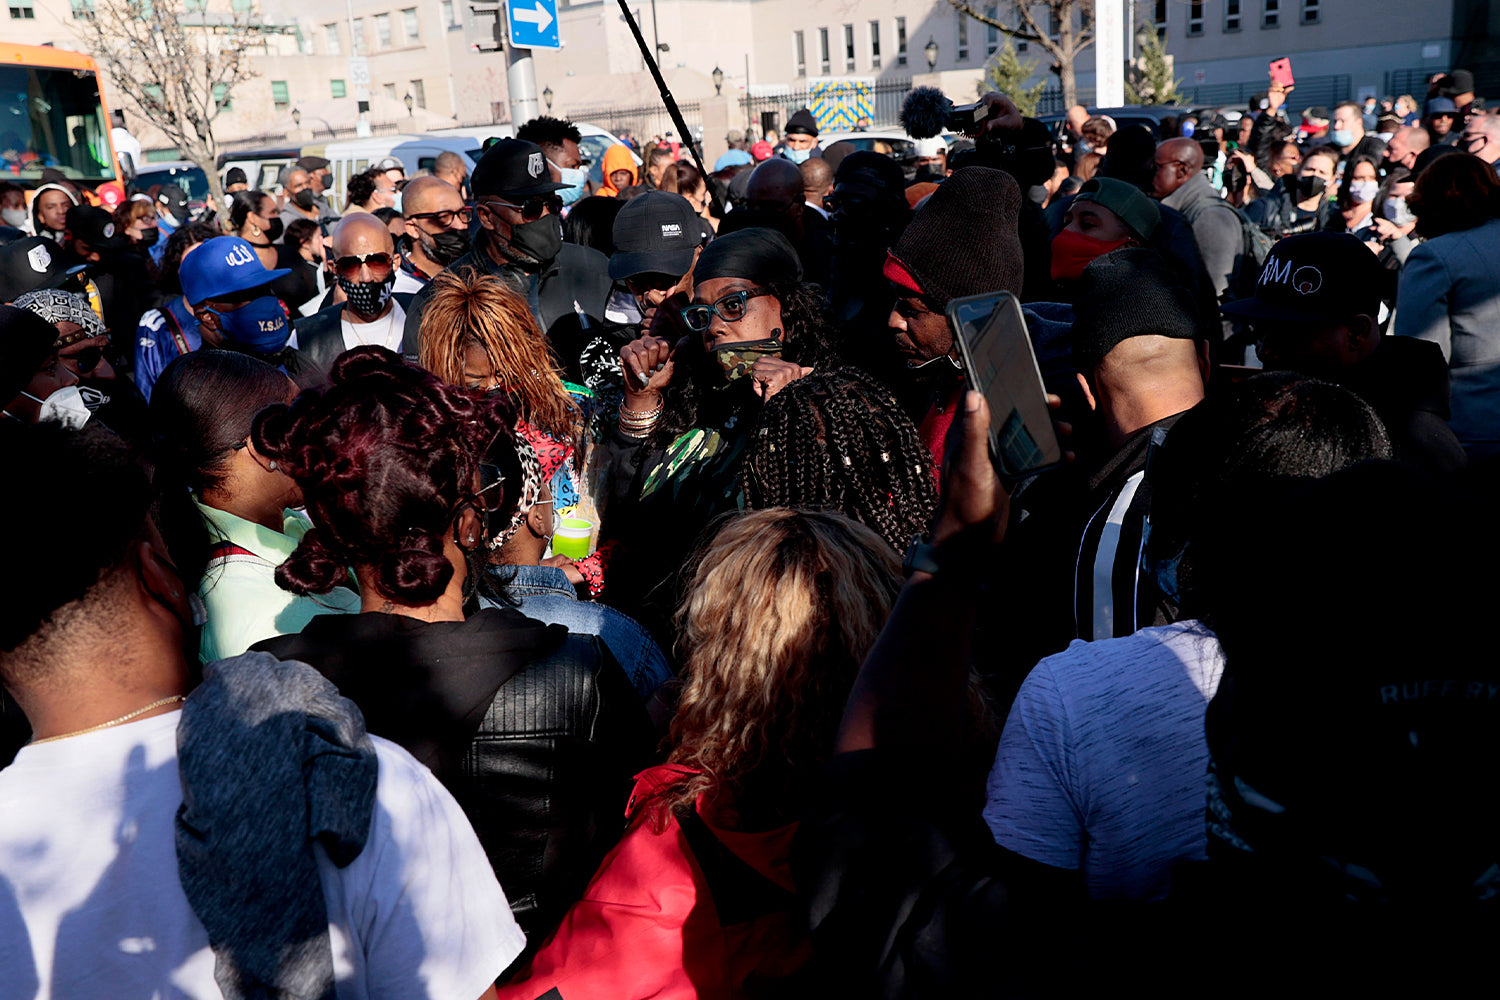 Fans of hospitalized rapper Earl Simmons, aka DMX, attend a prayer vigil hosted by the Ruff Ryders to the Rescue Foundation at White Plains Hospital on April 5, 2021 in White Plains, New York. - Gritty US rapper DMX was hospitalized and on life support on April 3 after a heart attack, his lawyer Murray Richman told AFP.